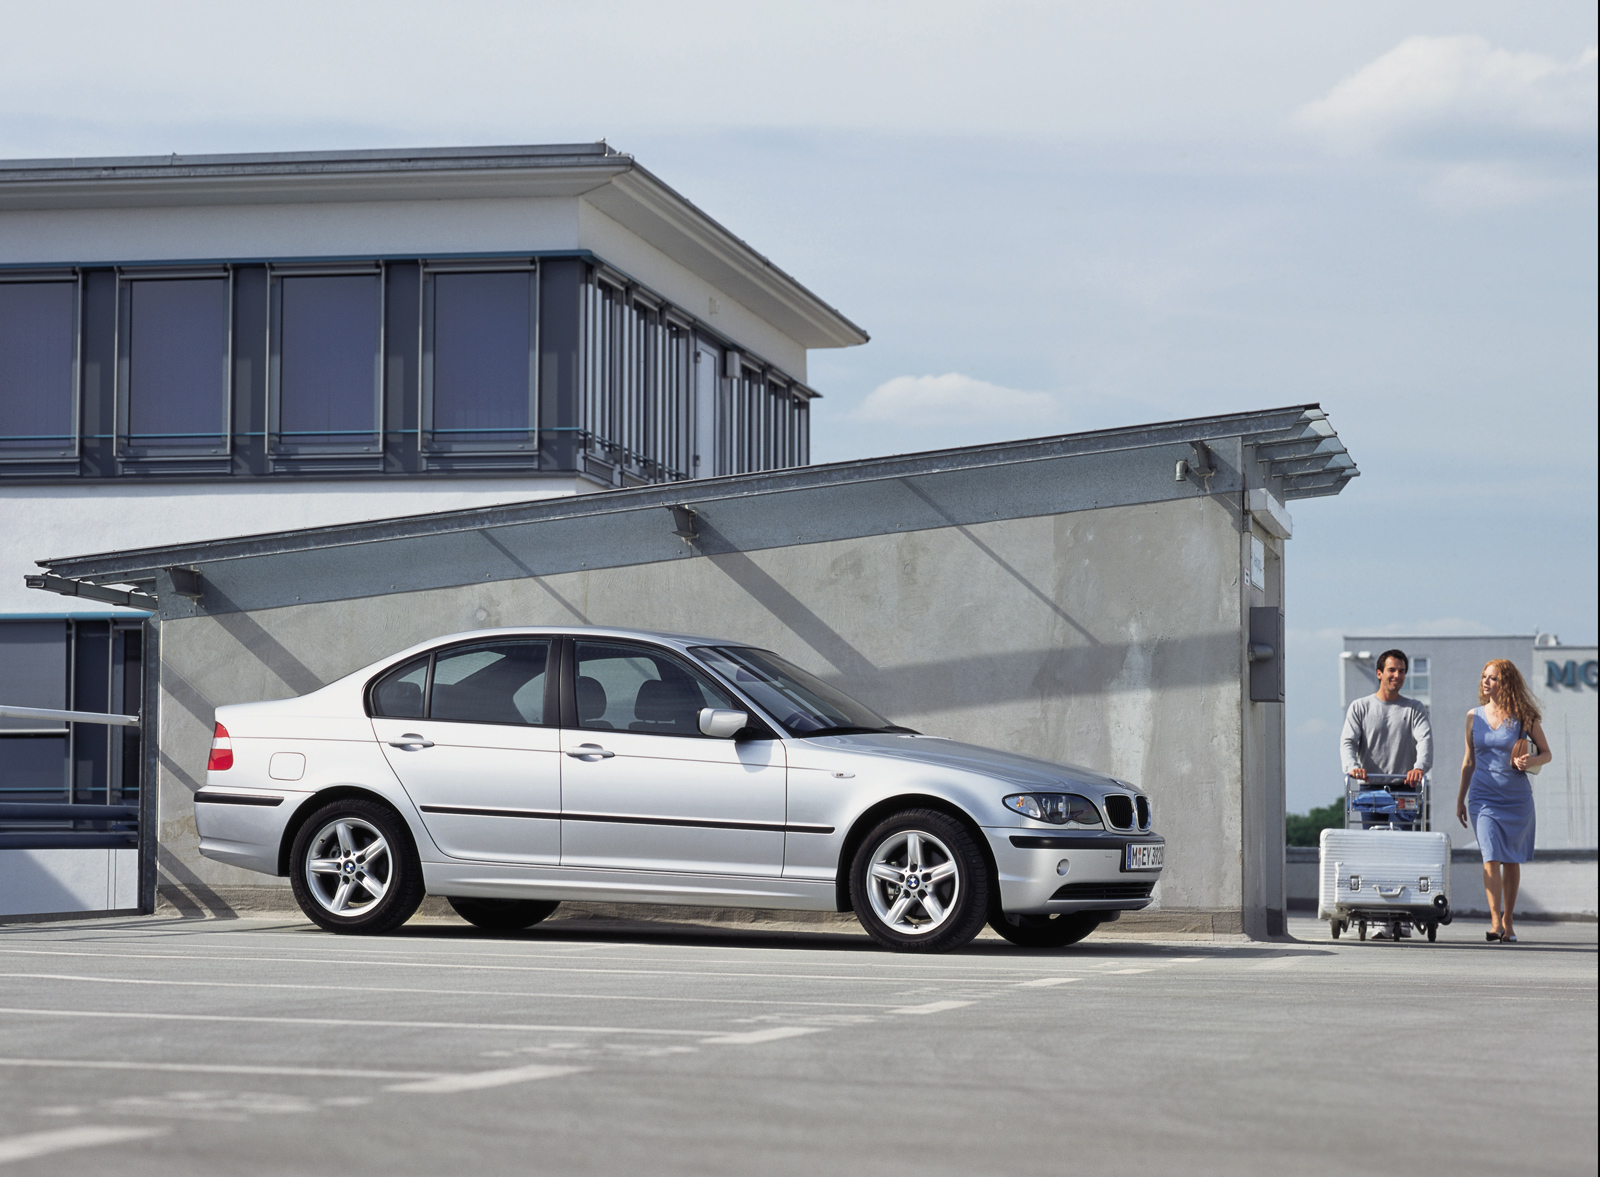 Bmw 318i 2002 Review Amazing Pictures And Images Look